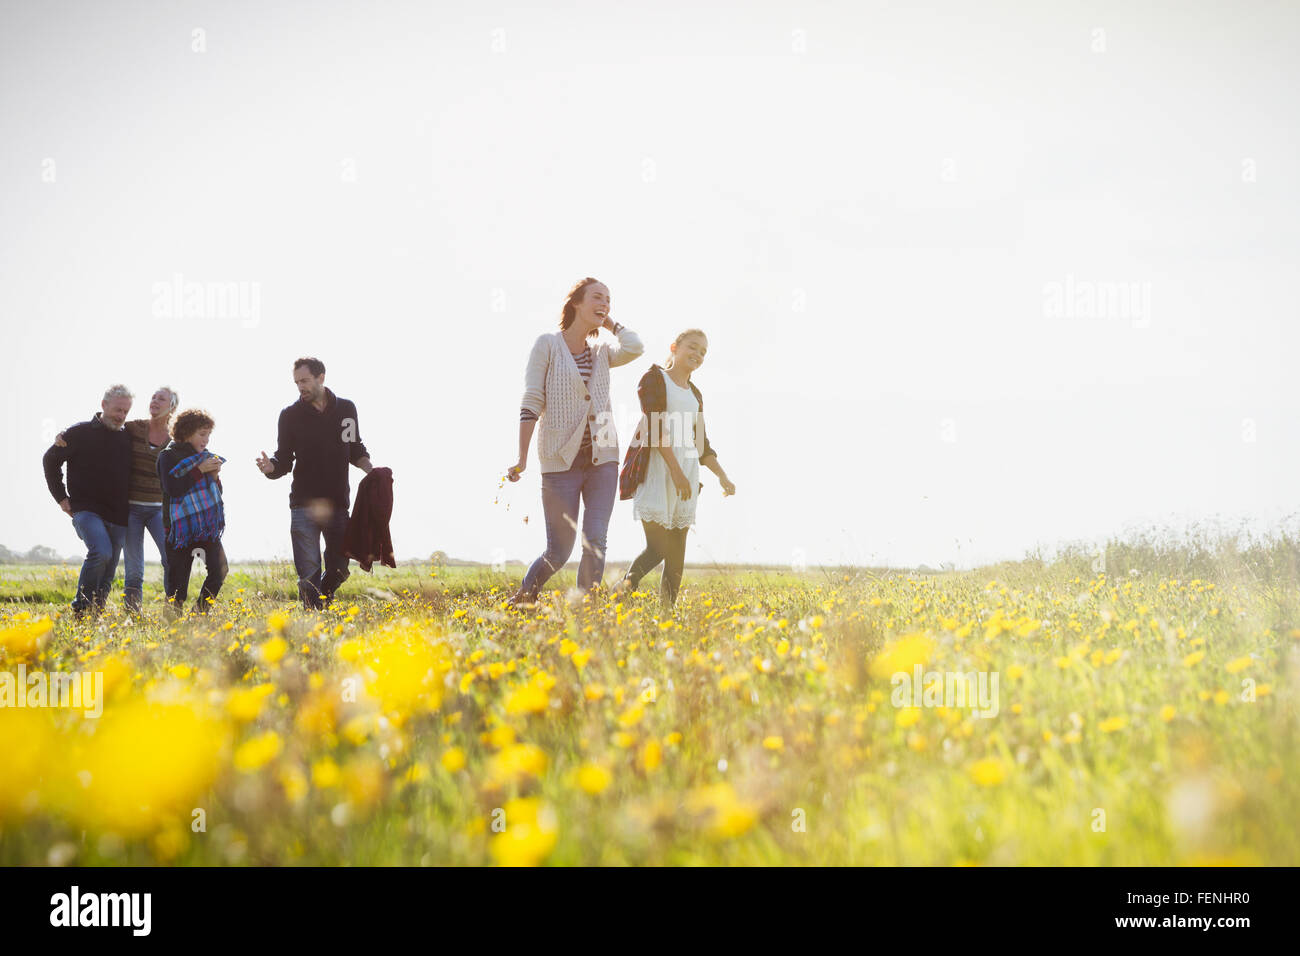 Multi-generation family walking in sunny prairie avec des fleurs sauvages Photo Stock